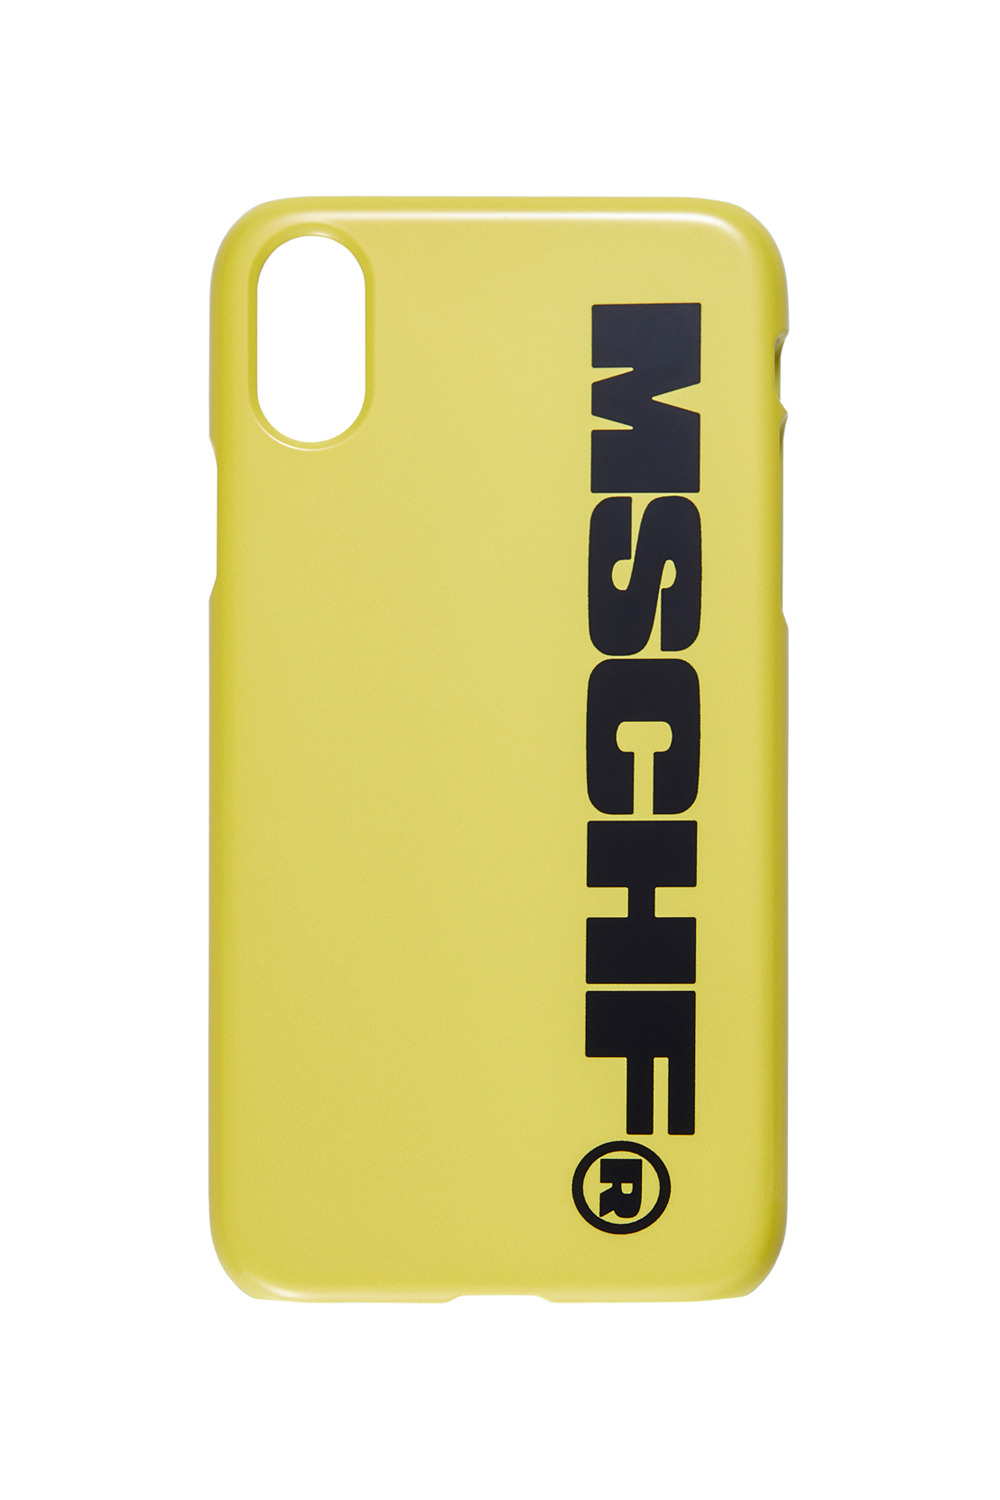 MSCHF_IPHONE CASE_yellow/black